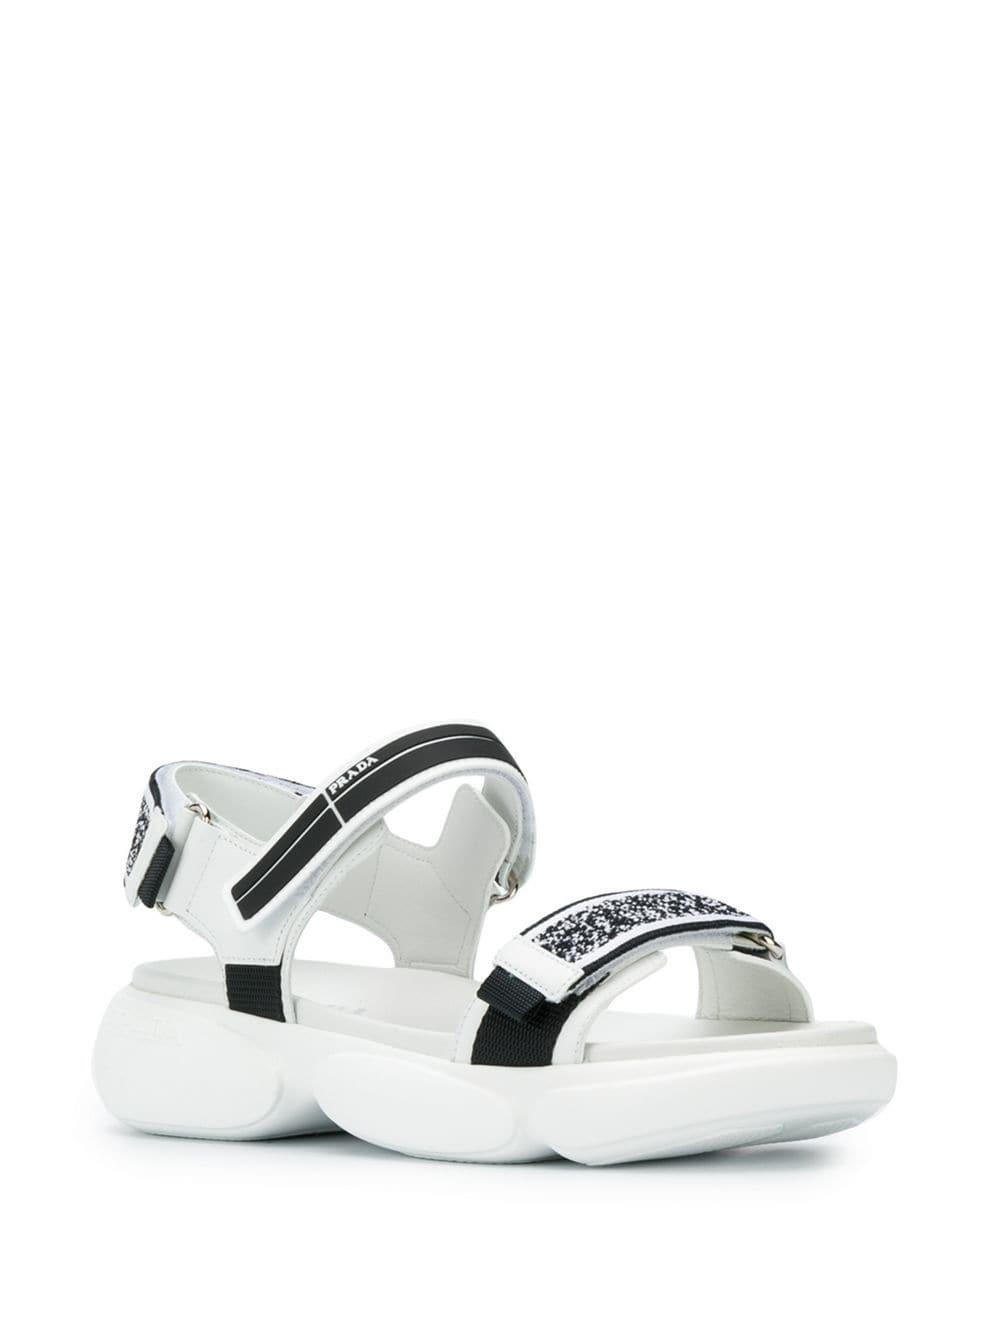 1310b3e289e4 Lyst - Prada Touch Strap Sandals in White